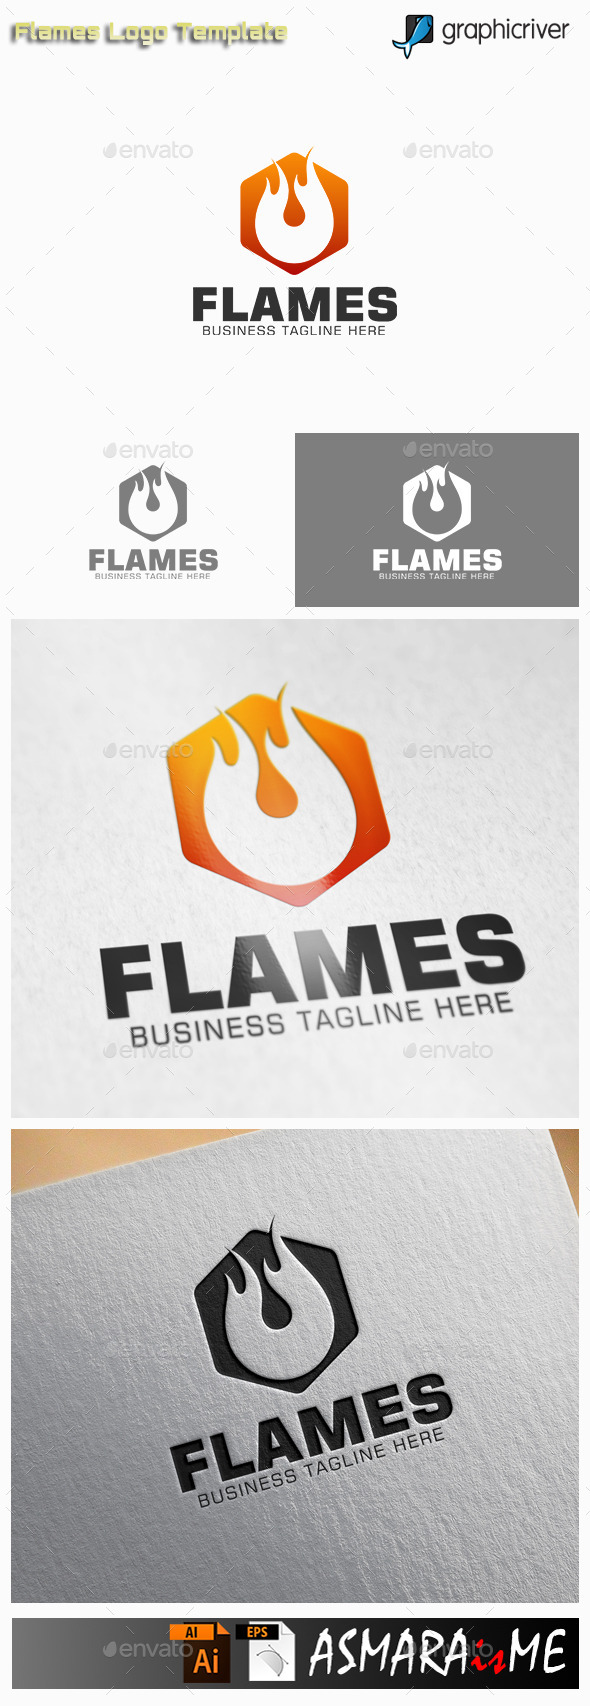 Flame - Fire Hexagon Logo